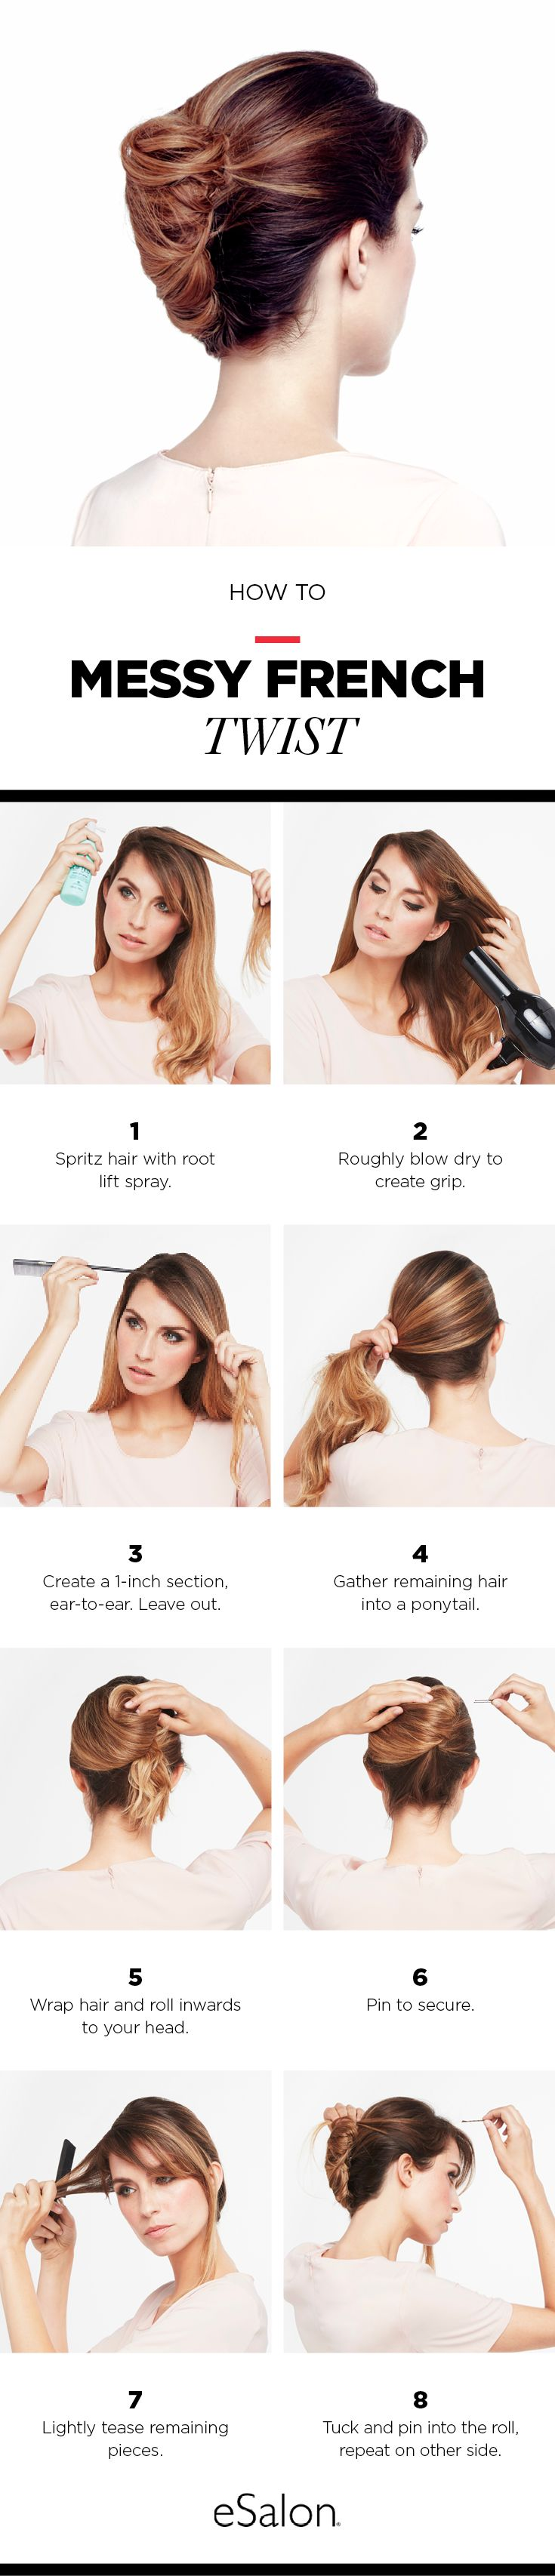 Hair How To: Messy French Twist Follow this tutorial for a beautiful chic style. This easy guide will make this twist one of your favorite go to looks.